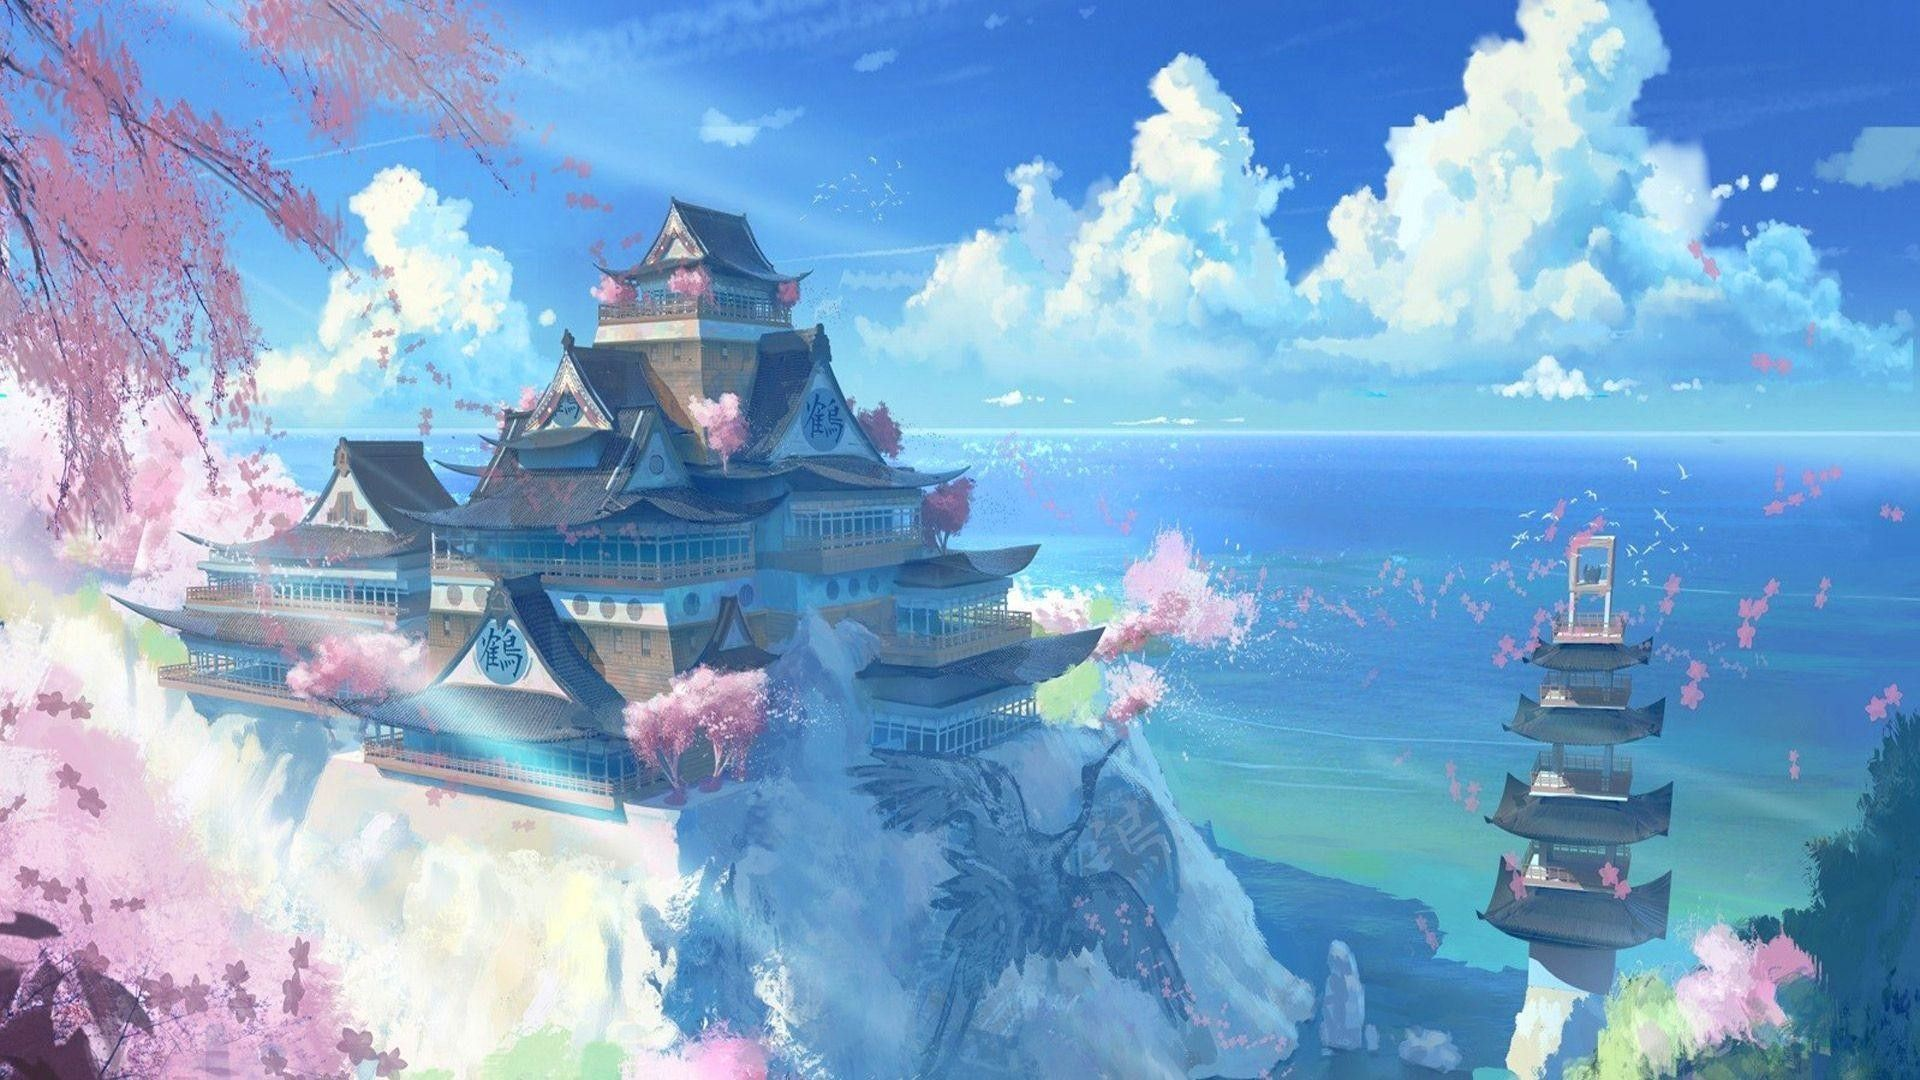 Beautiful Anime Scenery Wallpaper Laptop Anime Backgrounds Wallpapers Computer Wallpaper Desktop Wallpapers Anime Scenery Wallpaper